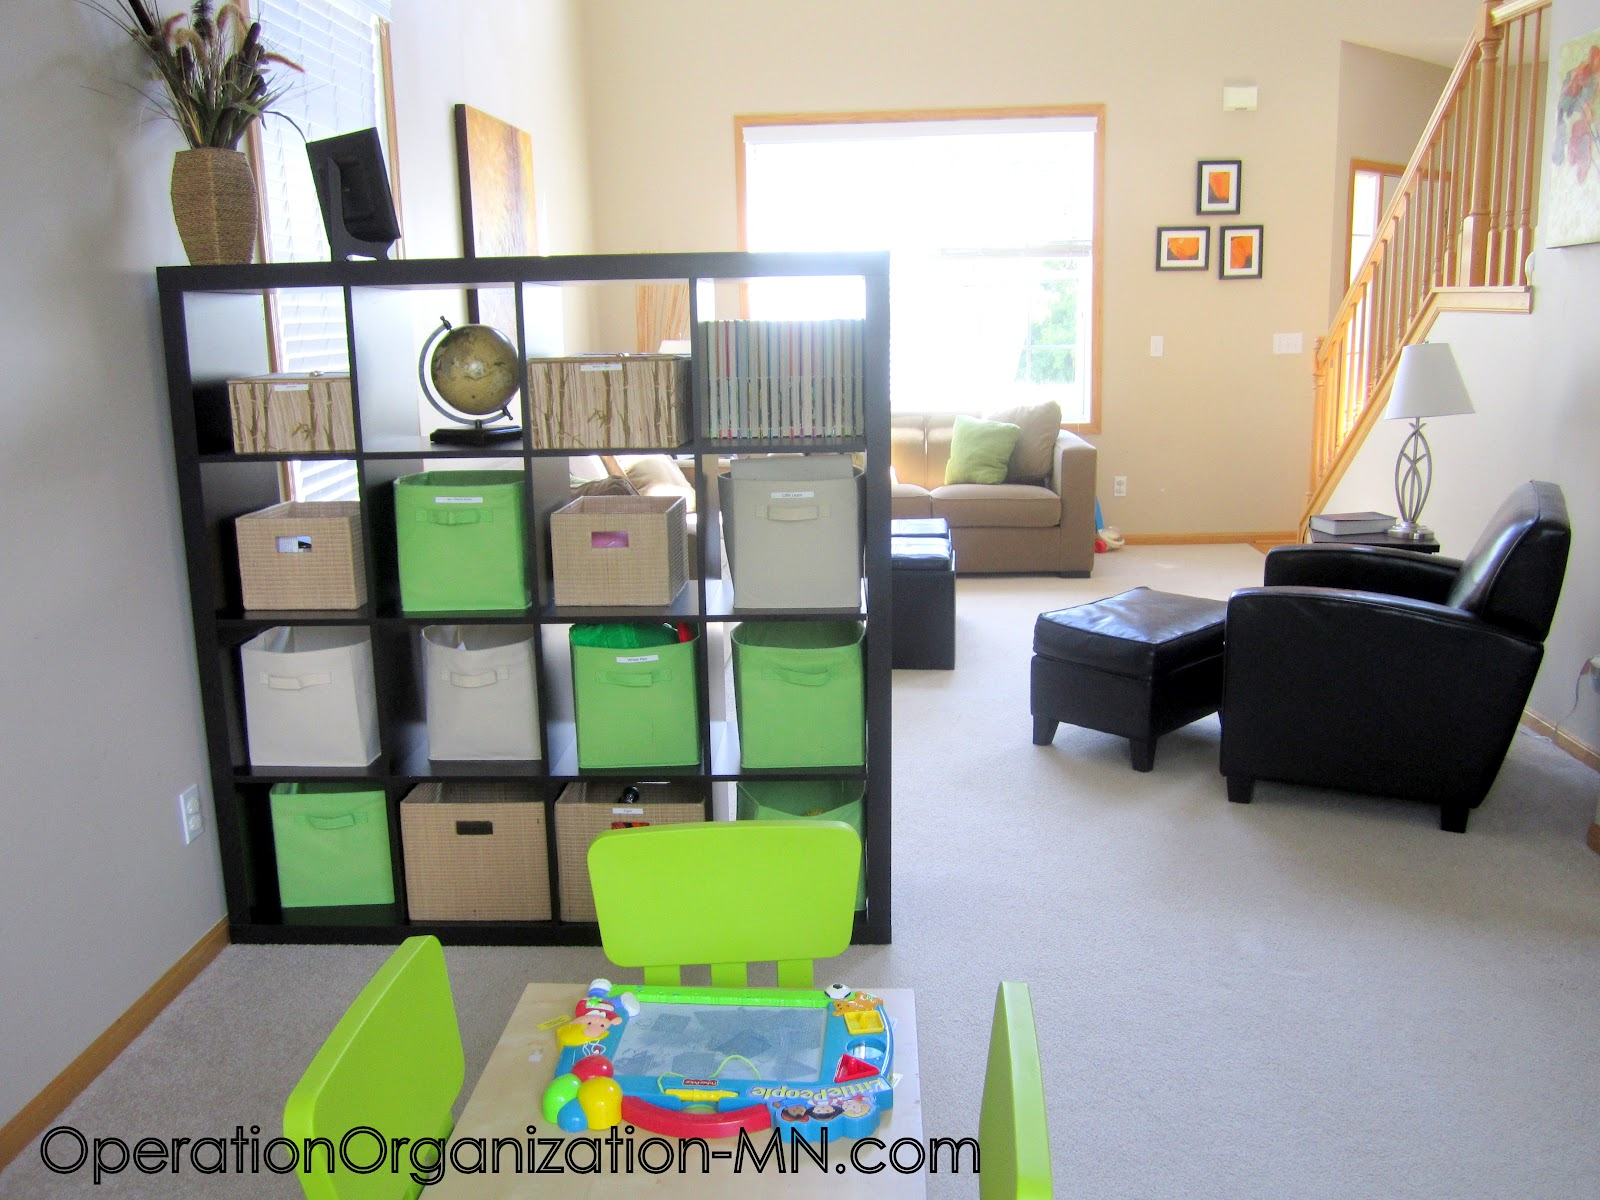 operation organization: Organizing Small Spaces :: Dual Purpose Rooms